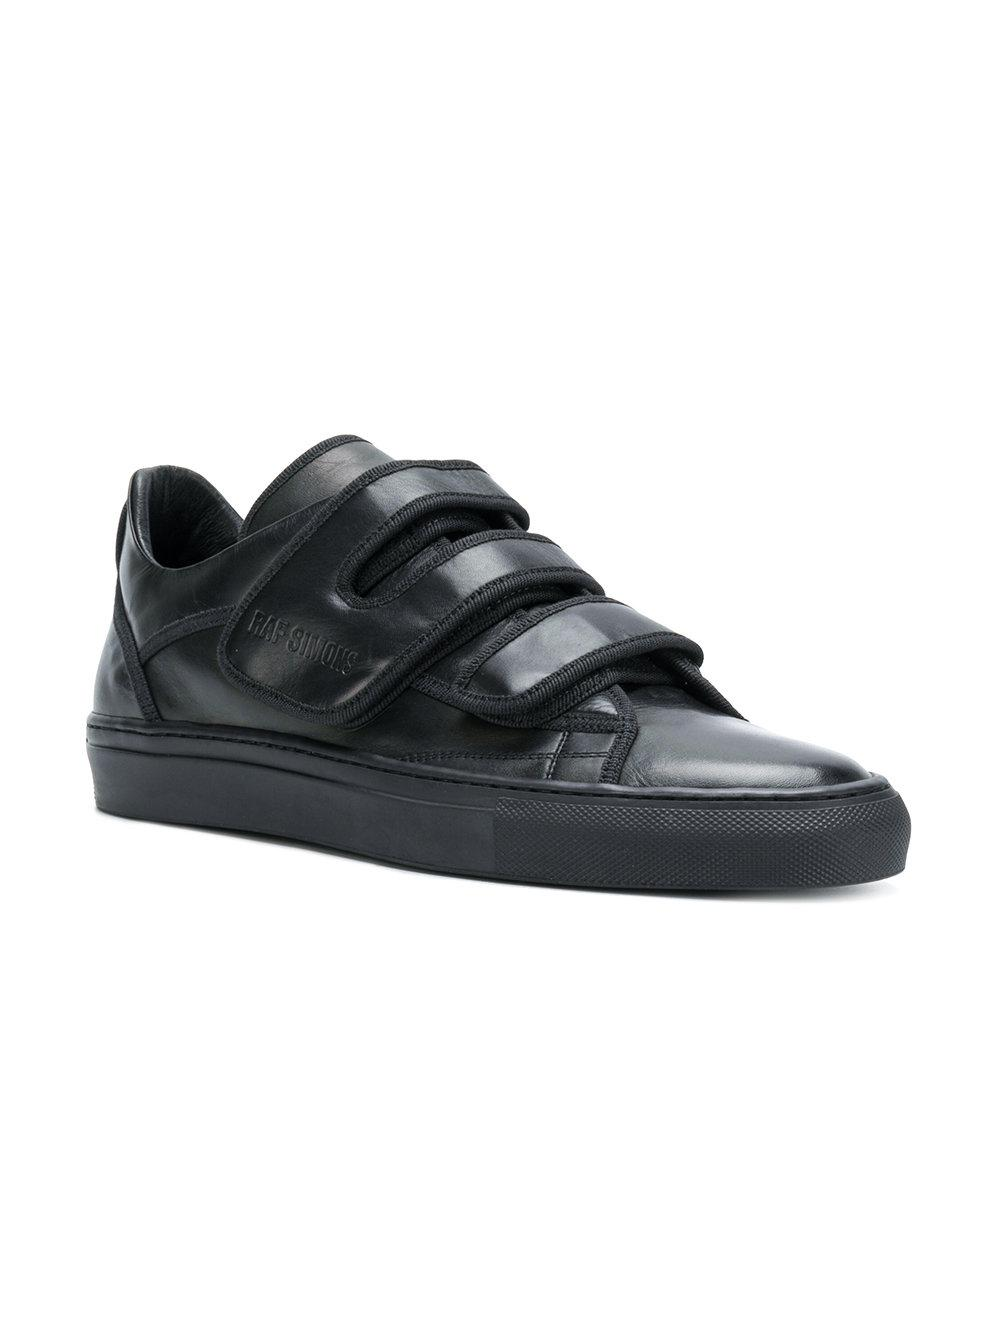 touch strap sneakers - Black Raf Simons zYZ1XKwP21